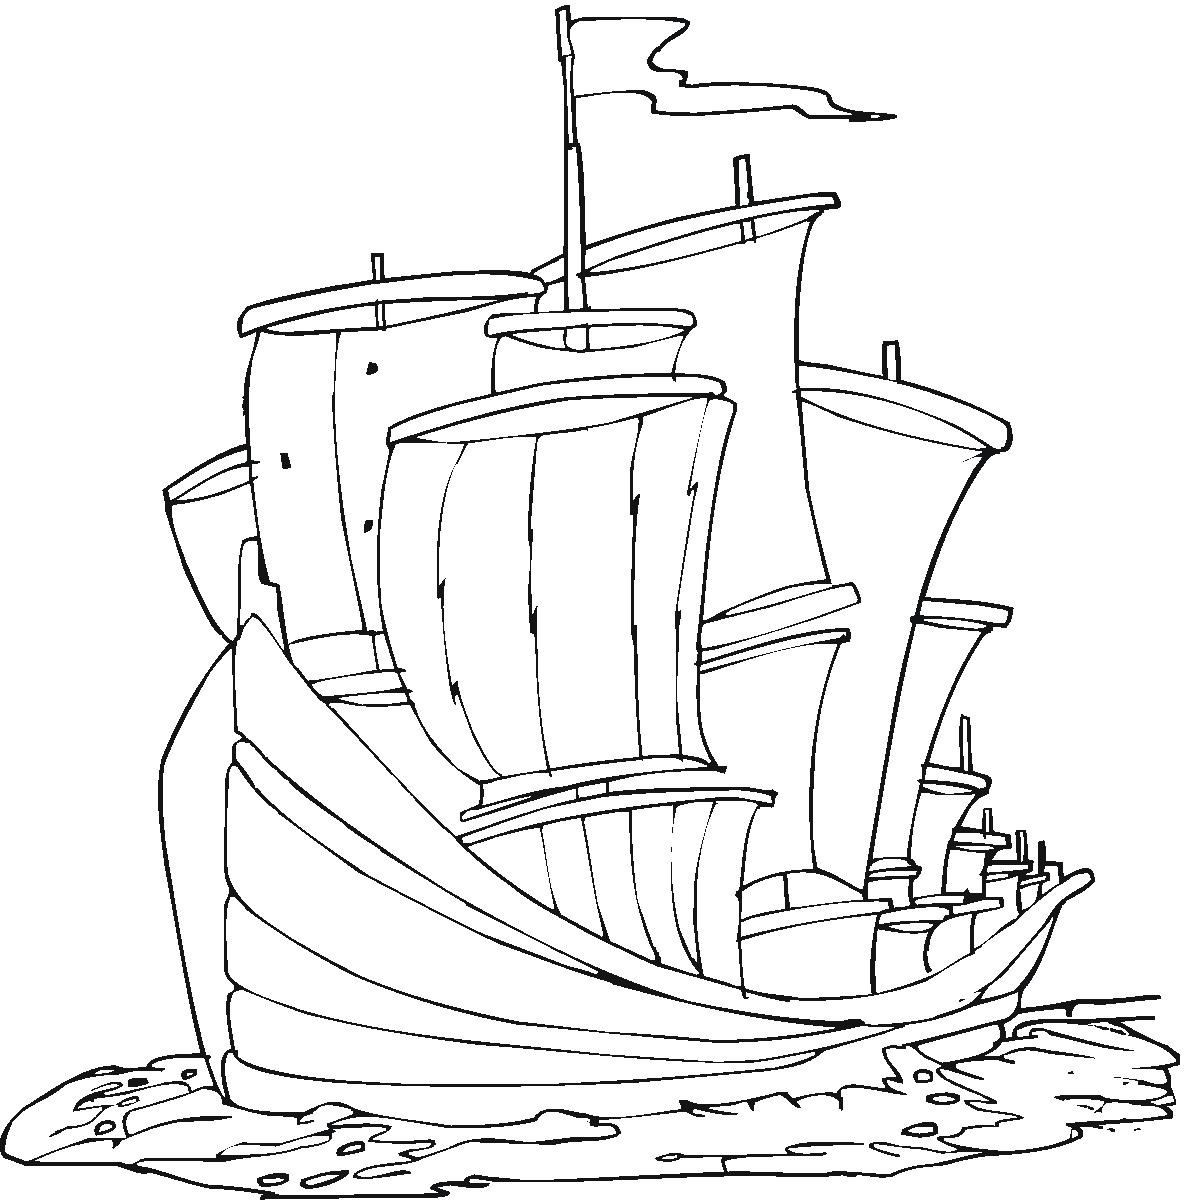 nephi coloring pages - photo#33